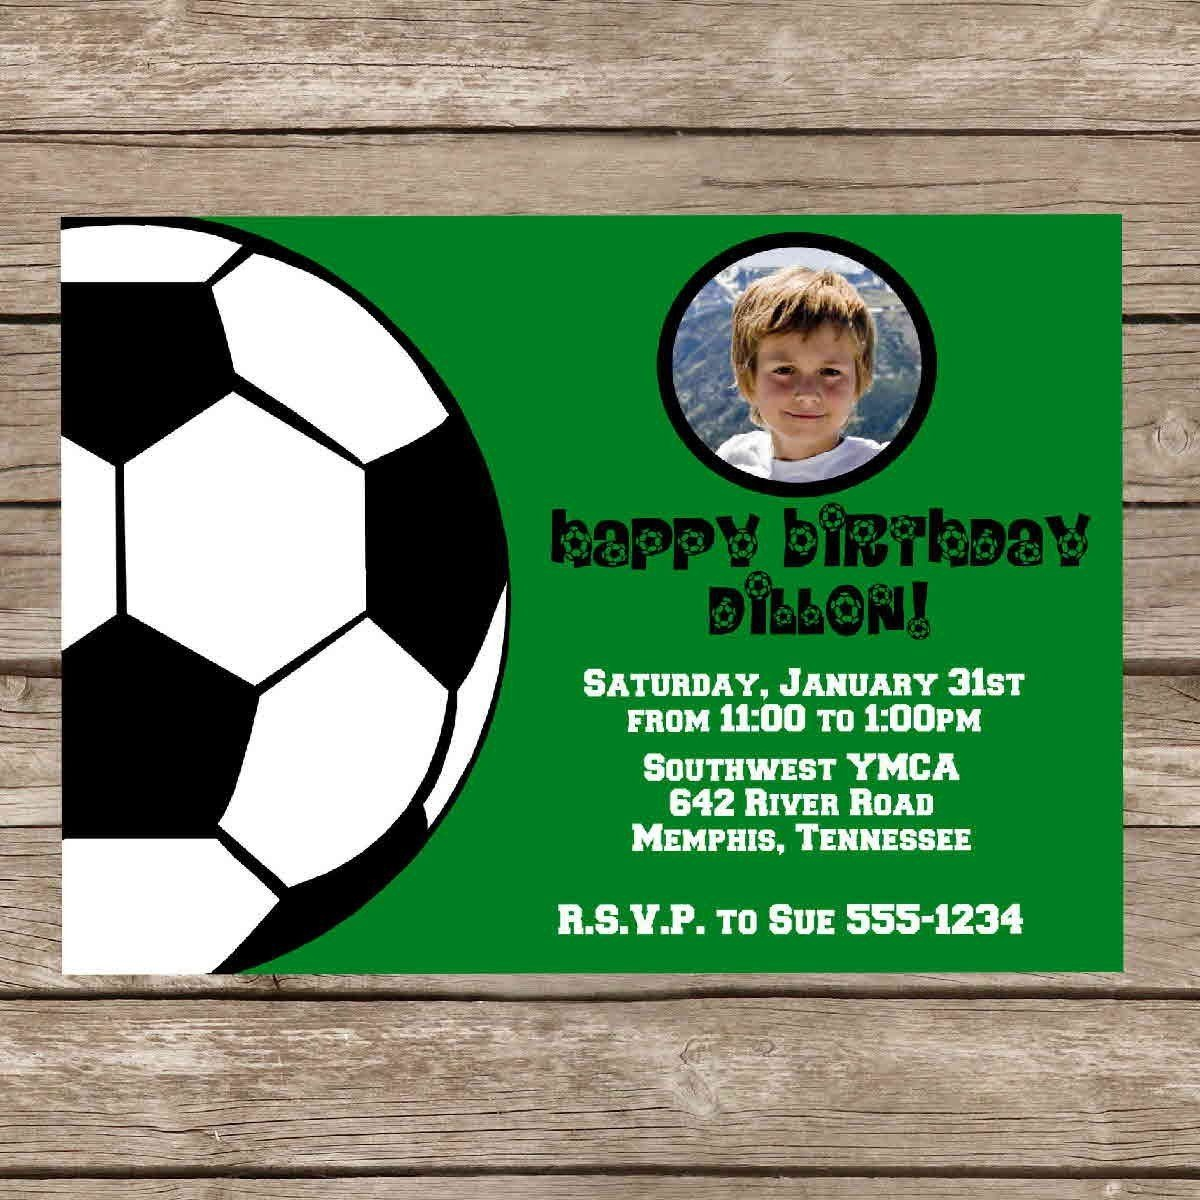 Printable Easter Birthday Party Invitations. Free Printable Birthday - Free Printable Soccer Birthday Invitations